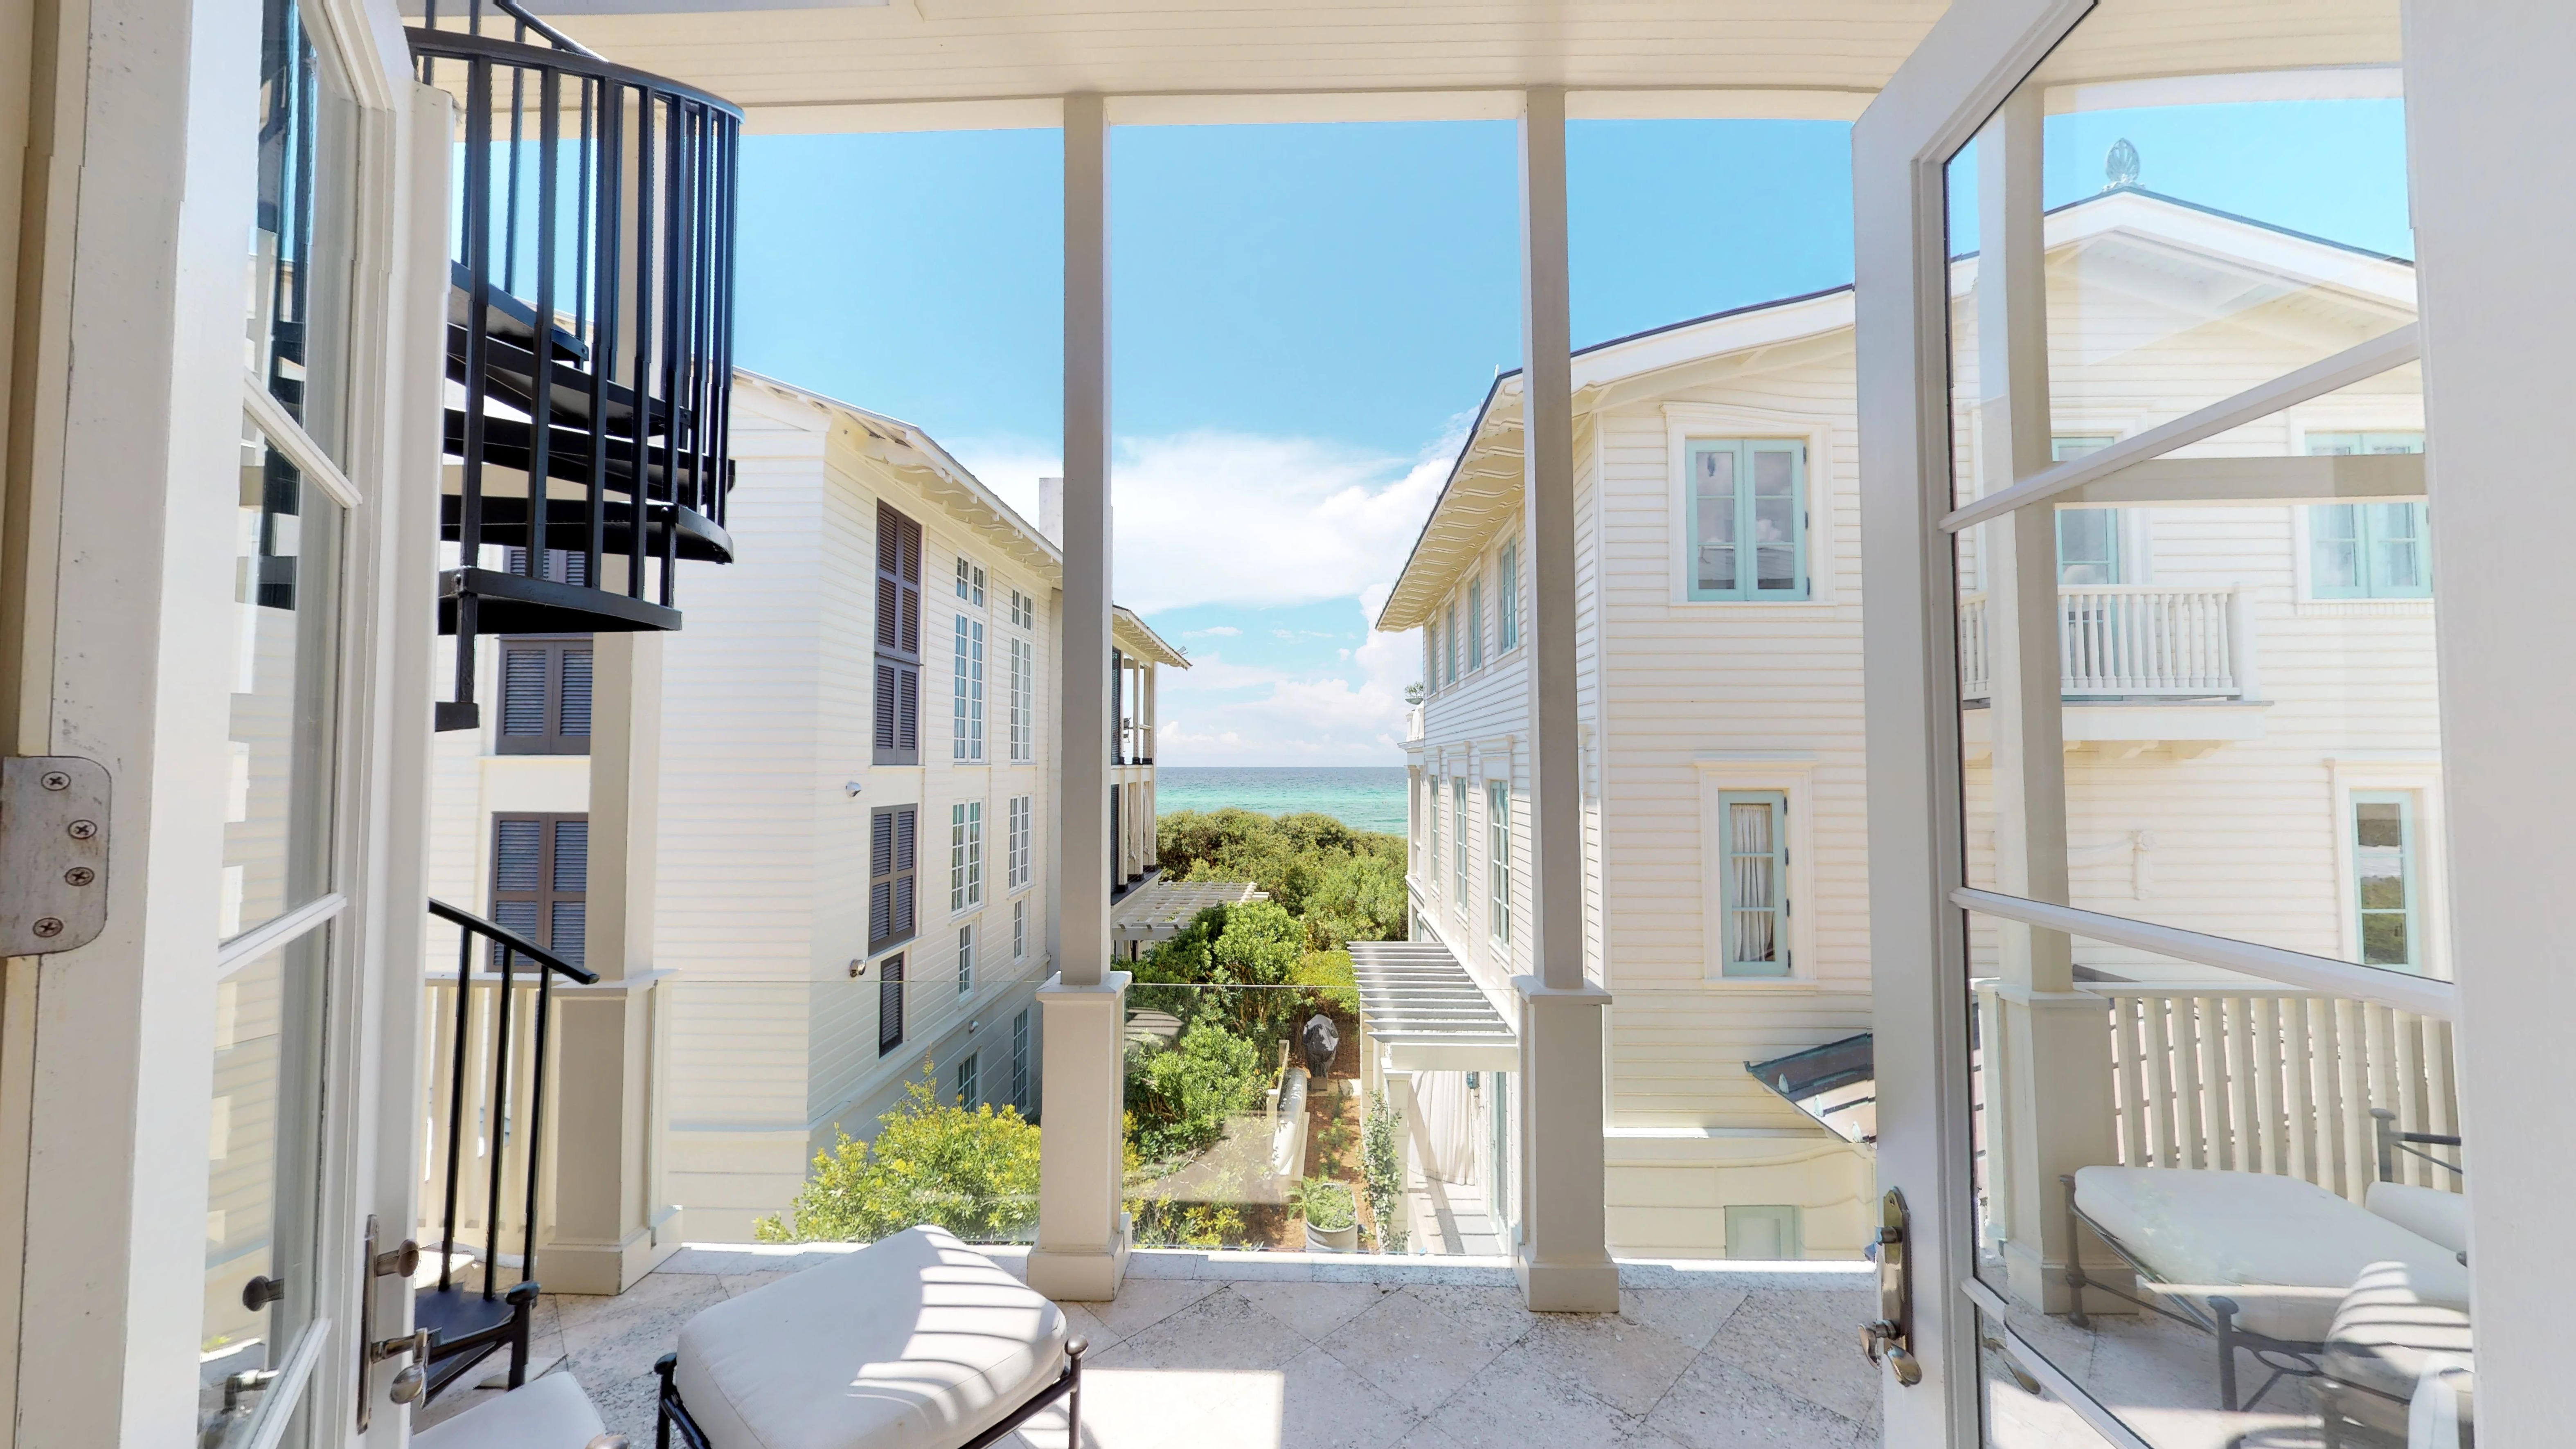 Direct access to the balcony with beautiful views of the Gulf